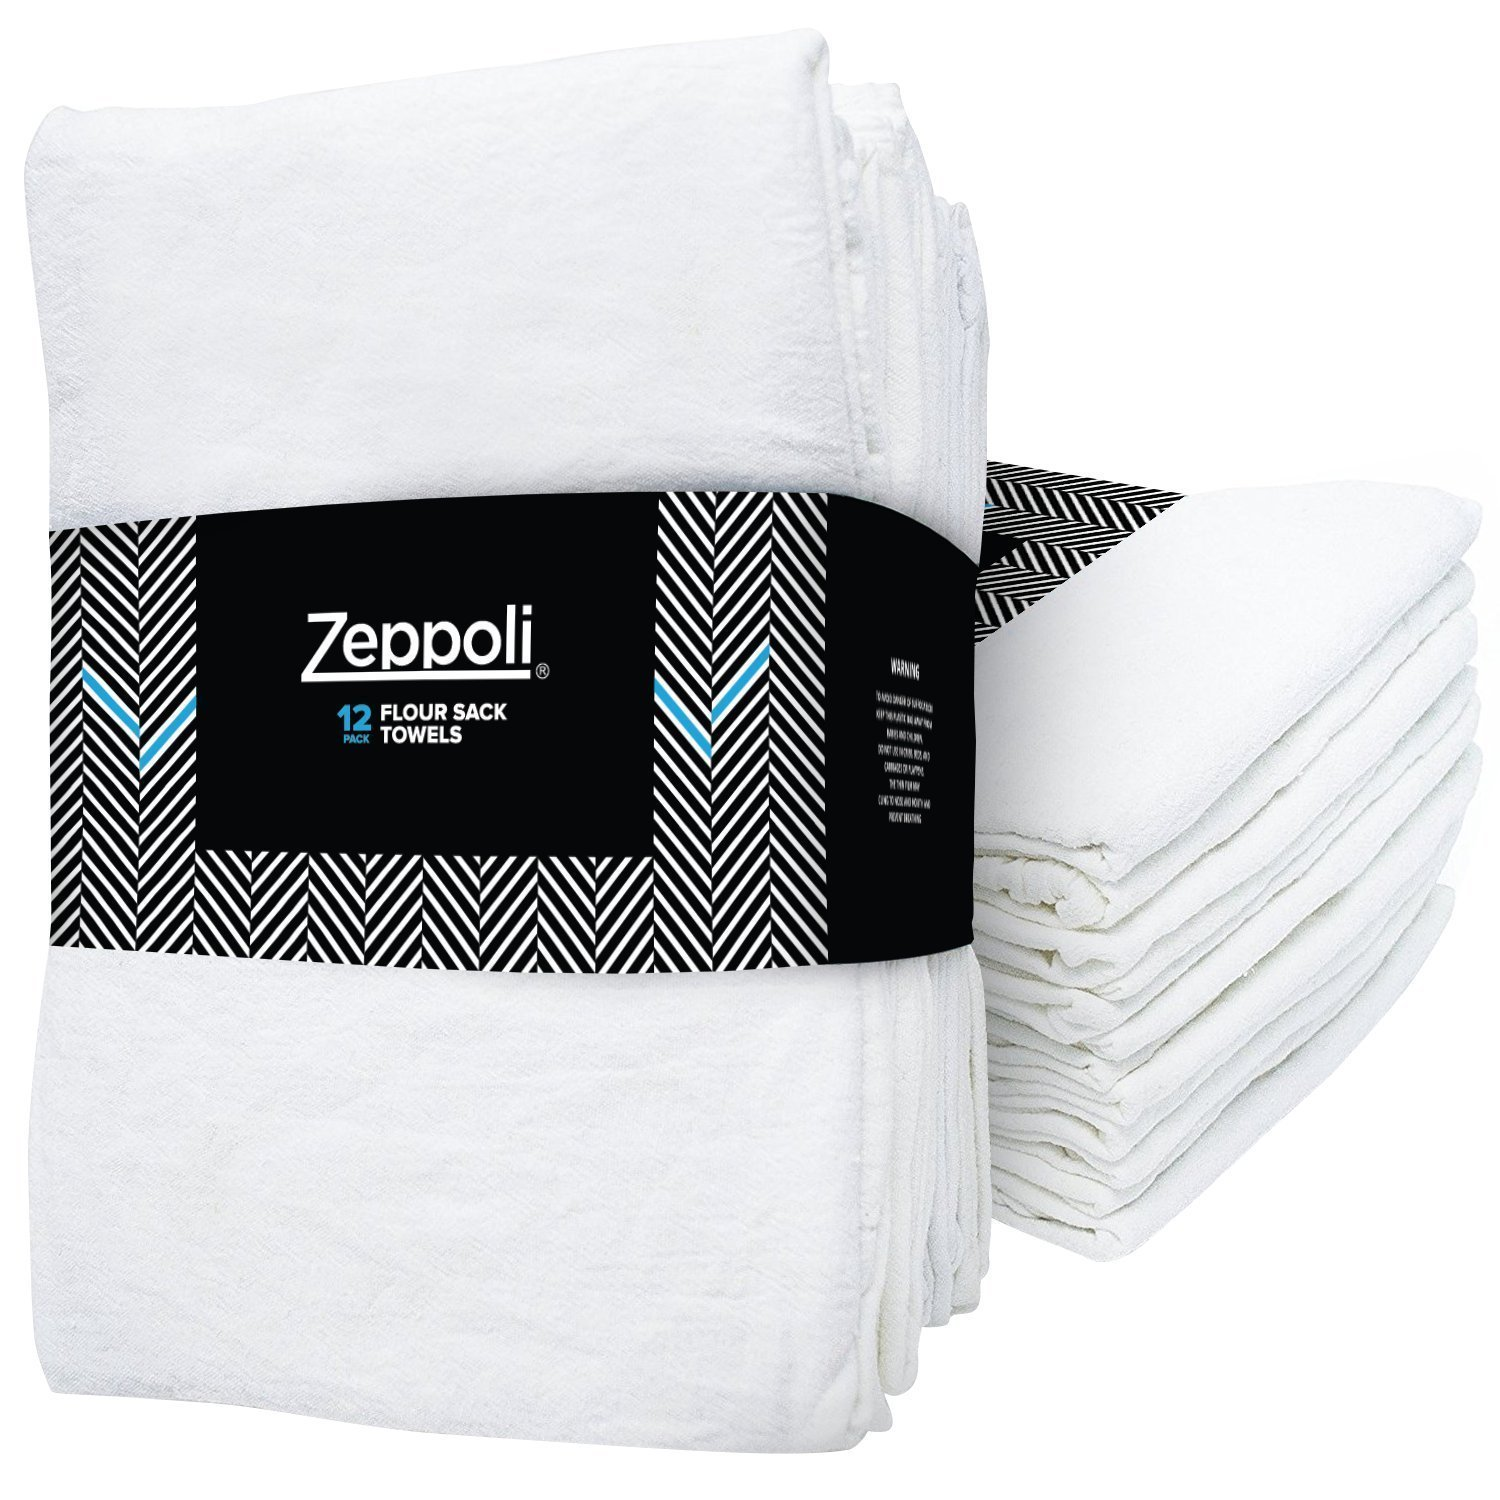 "Zeppoli 24-Pack Flour Sack Towels - 31"" x 31"" Kitchen Towels - Absorbent White Dish Towels - 100% Ring Spun Cotton Bar Towels"